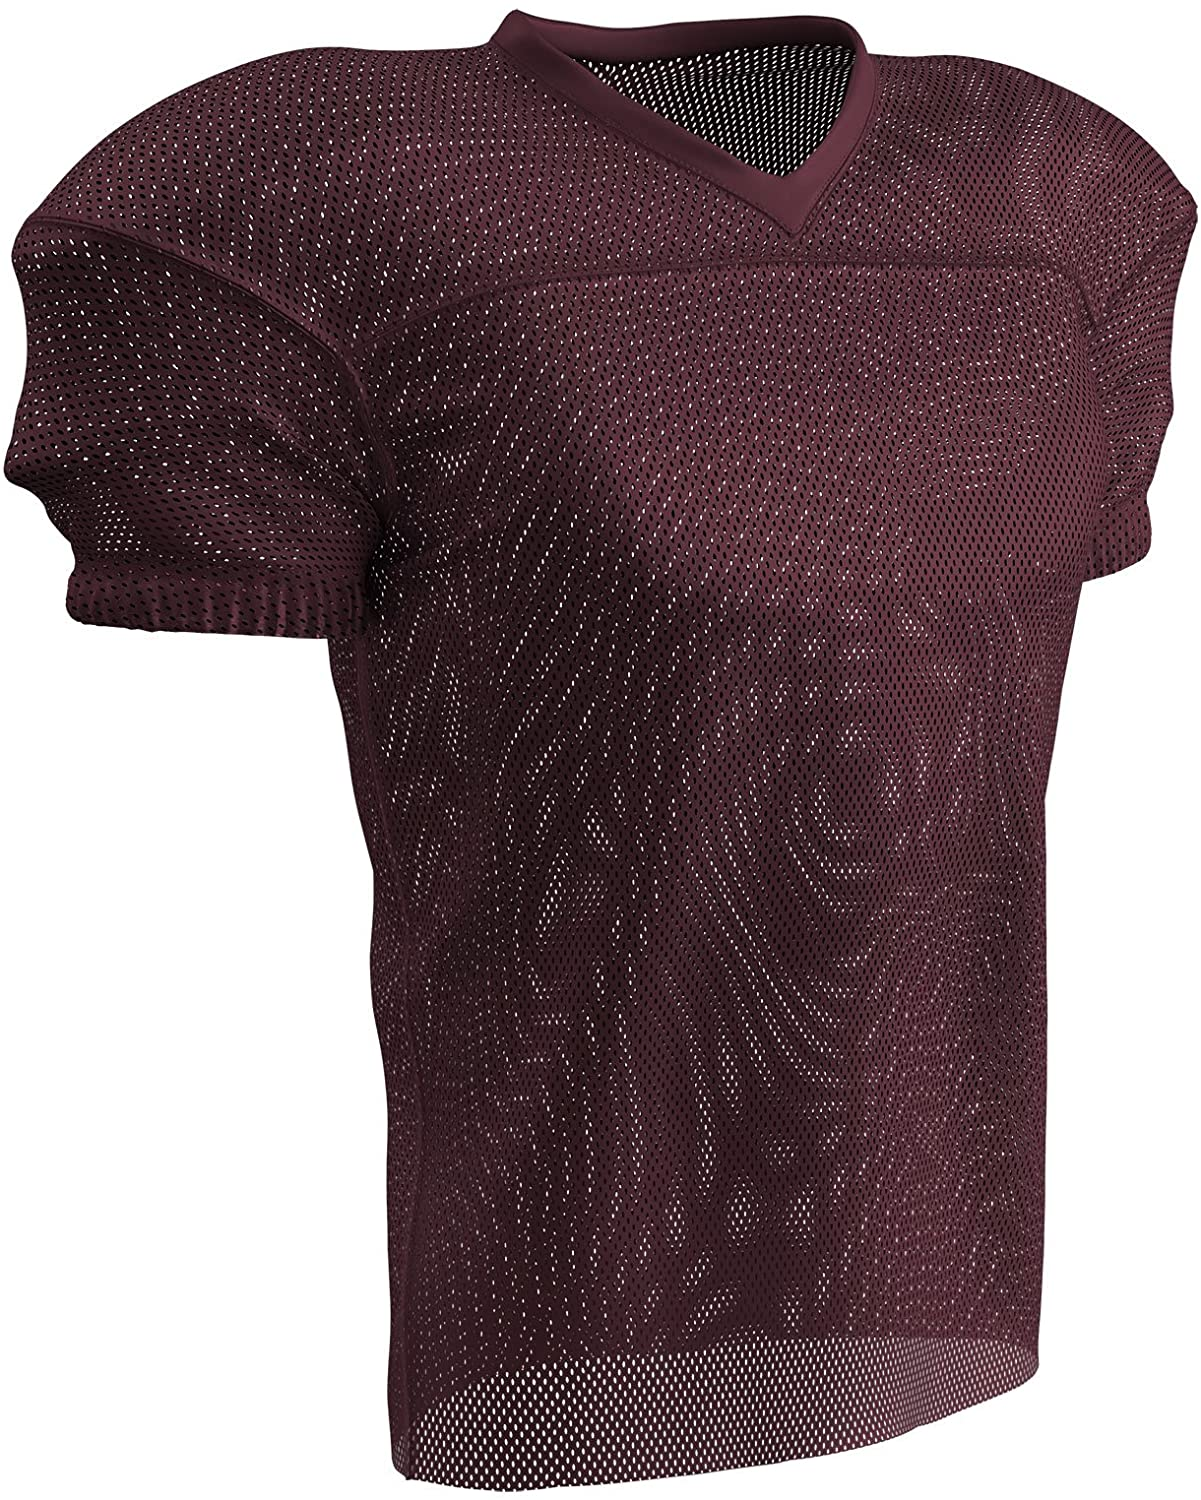 CHAMPRO Fire Football Jersey; Adult Maroon